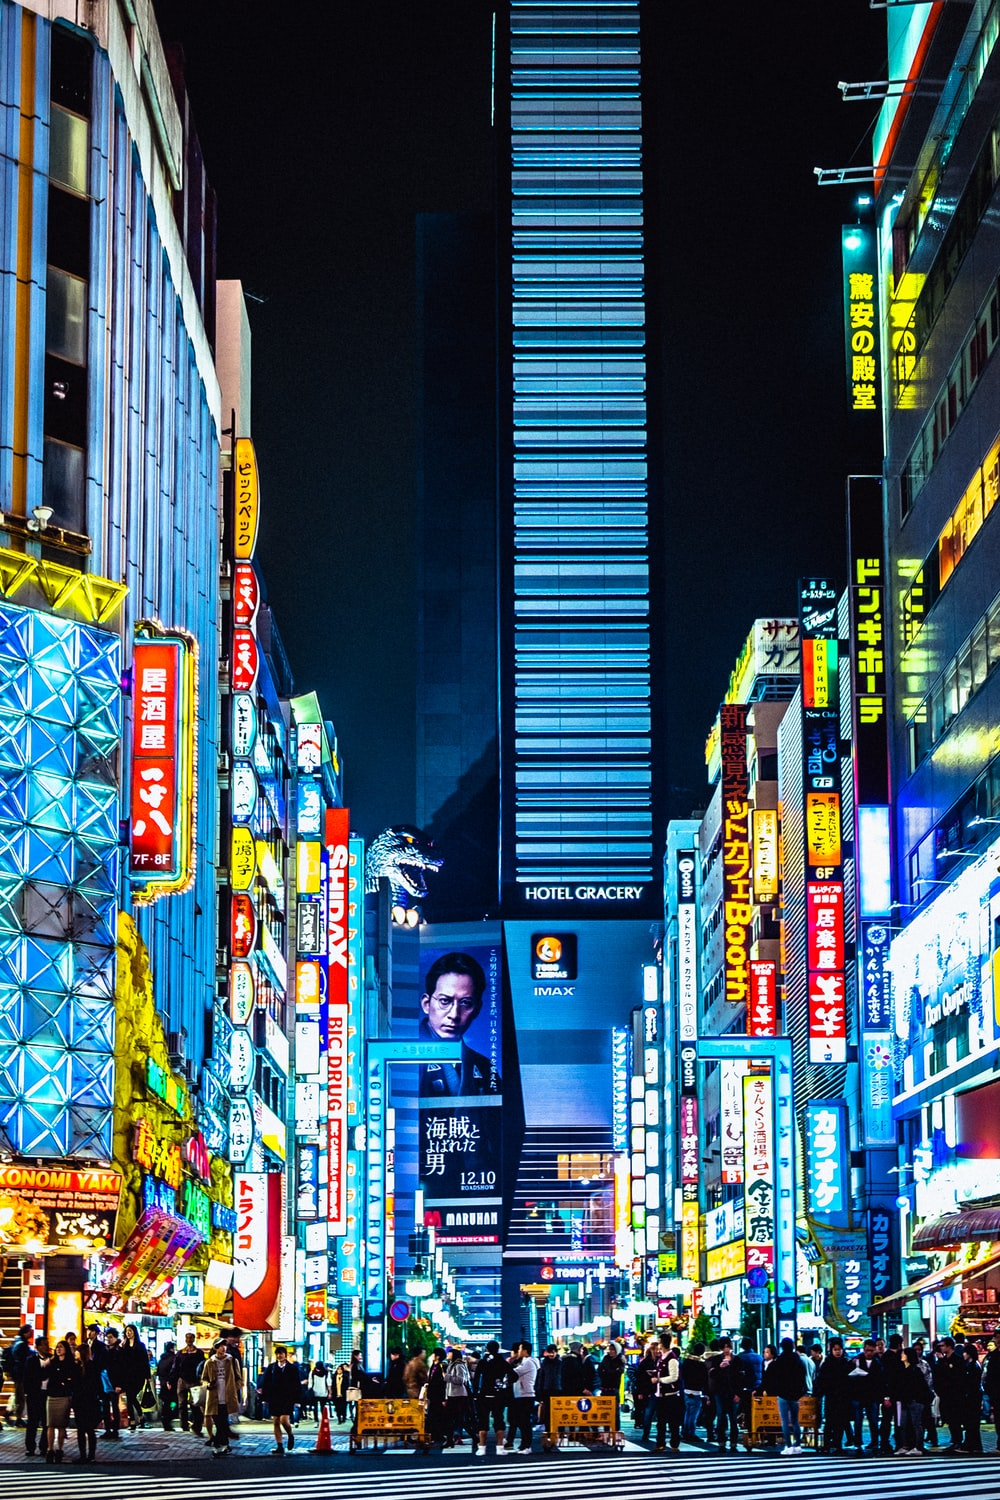 100 Tokyo Pictures [Scenic Travel Photos] Download Images 1000x1500